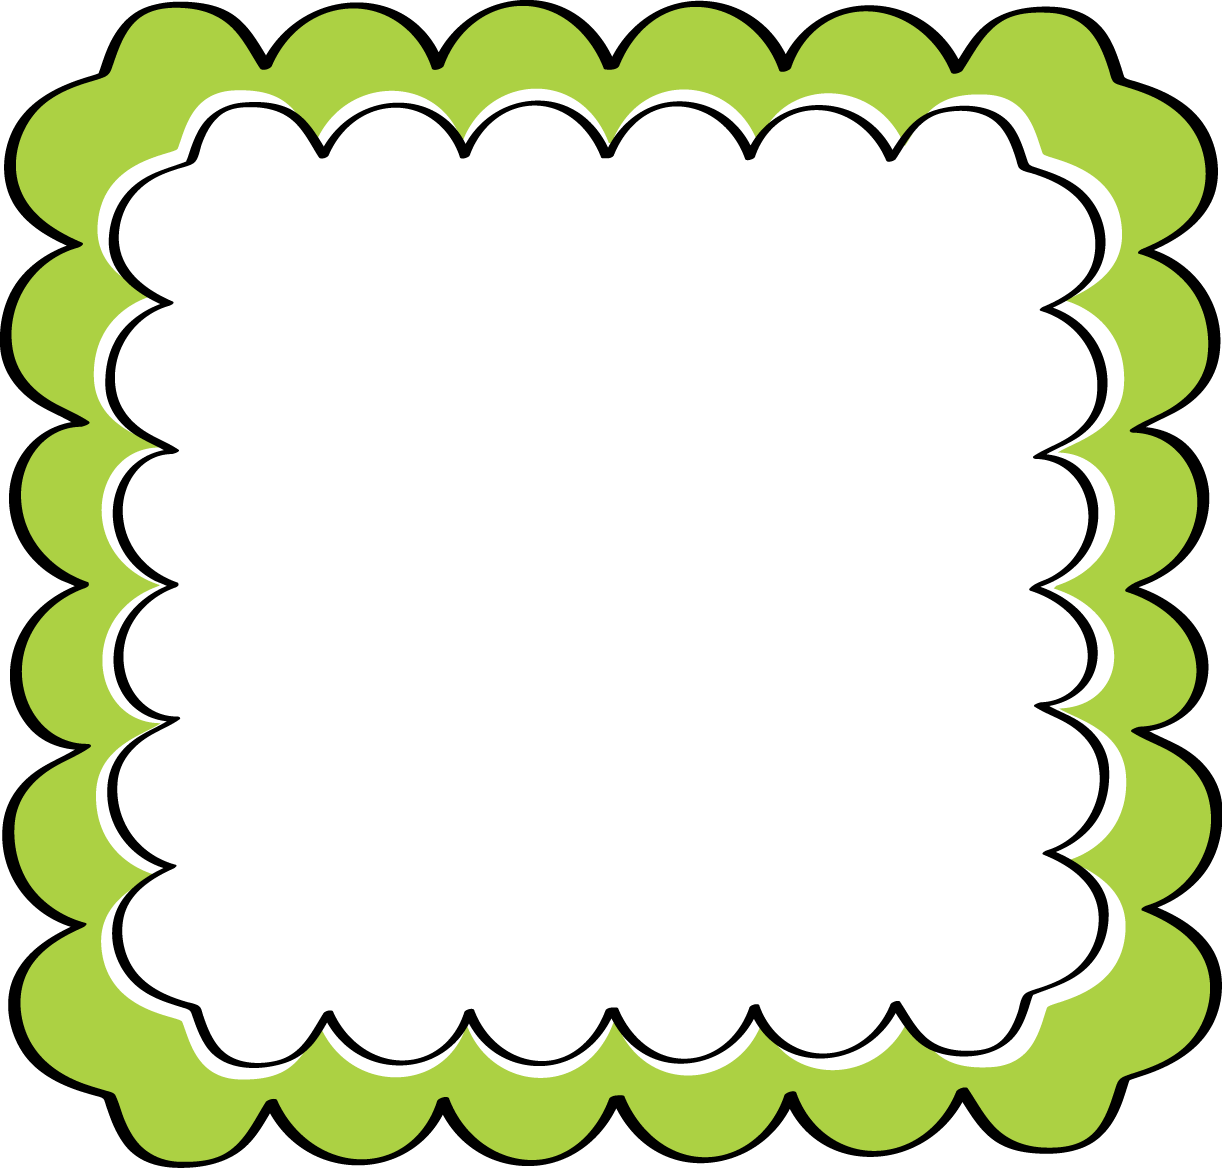 1222x1168 Health Related Border Cliparts 220365